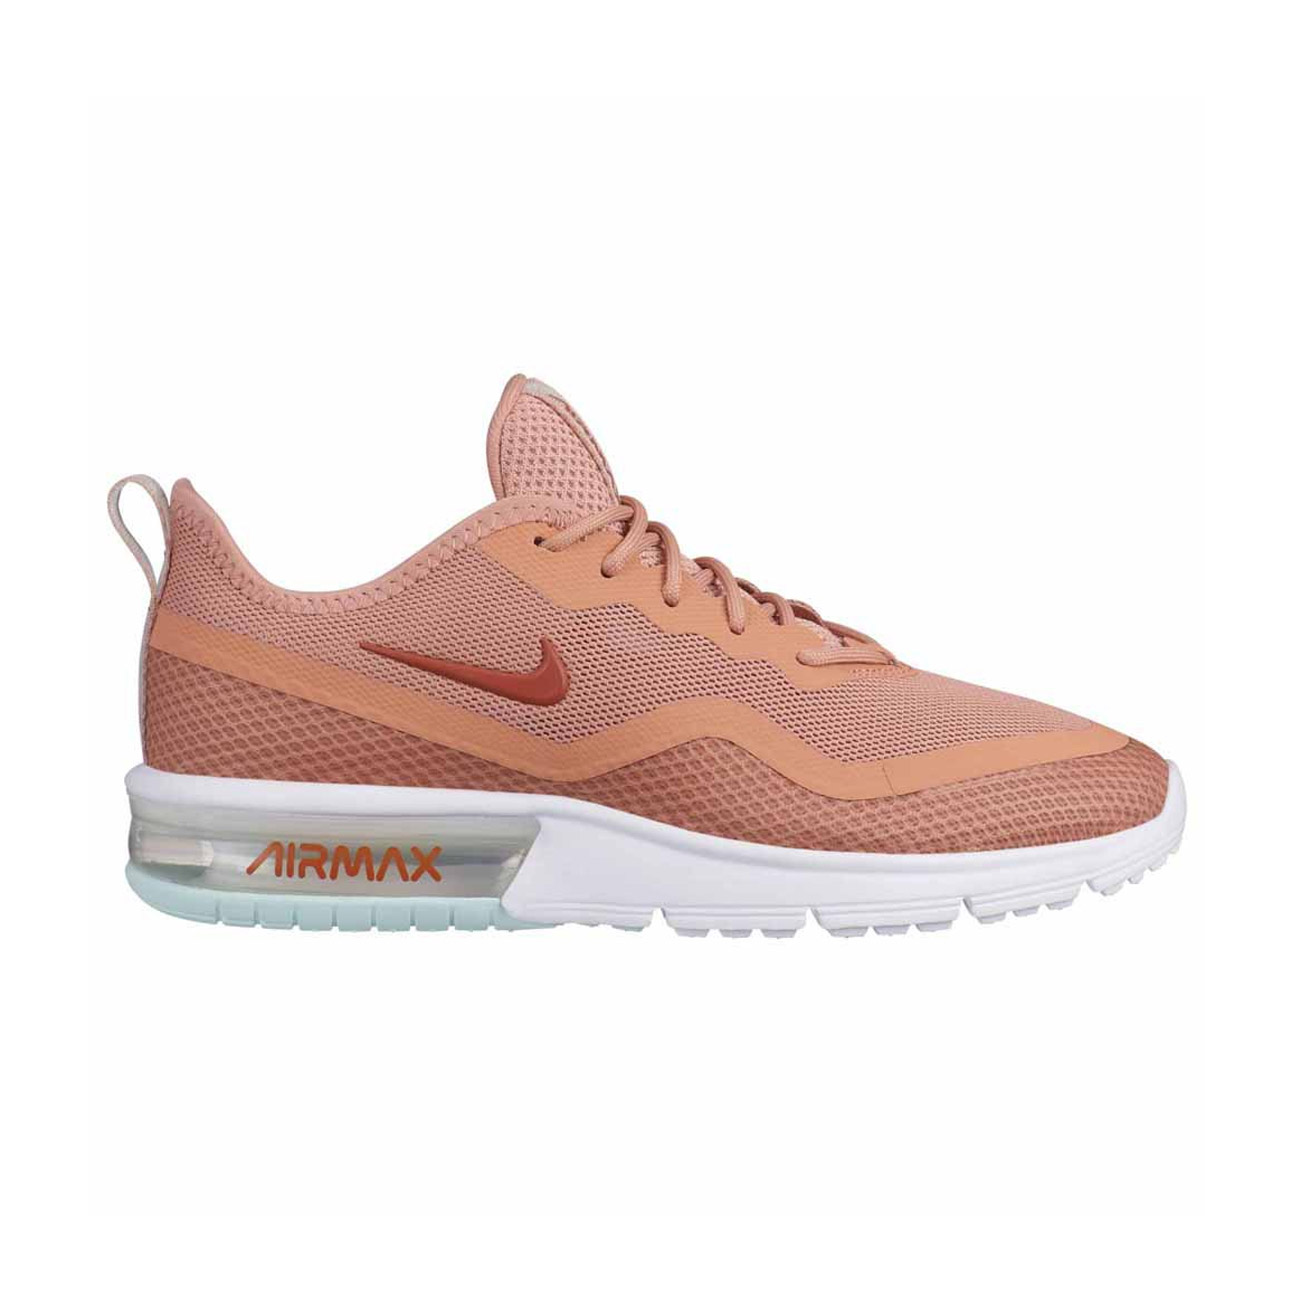 wholesale dealer 164c4 7b639 Nike Womans Air Max Sequent 4 5 Trainers Rose Gold